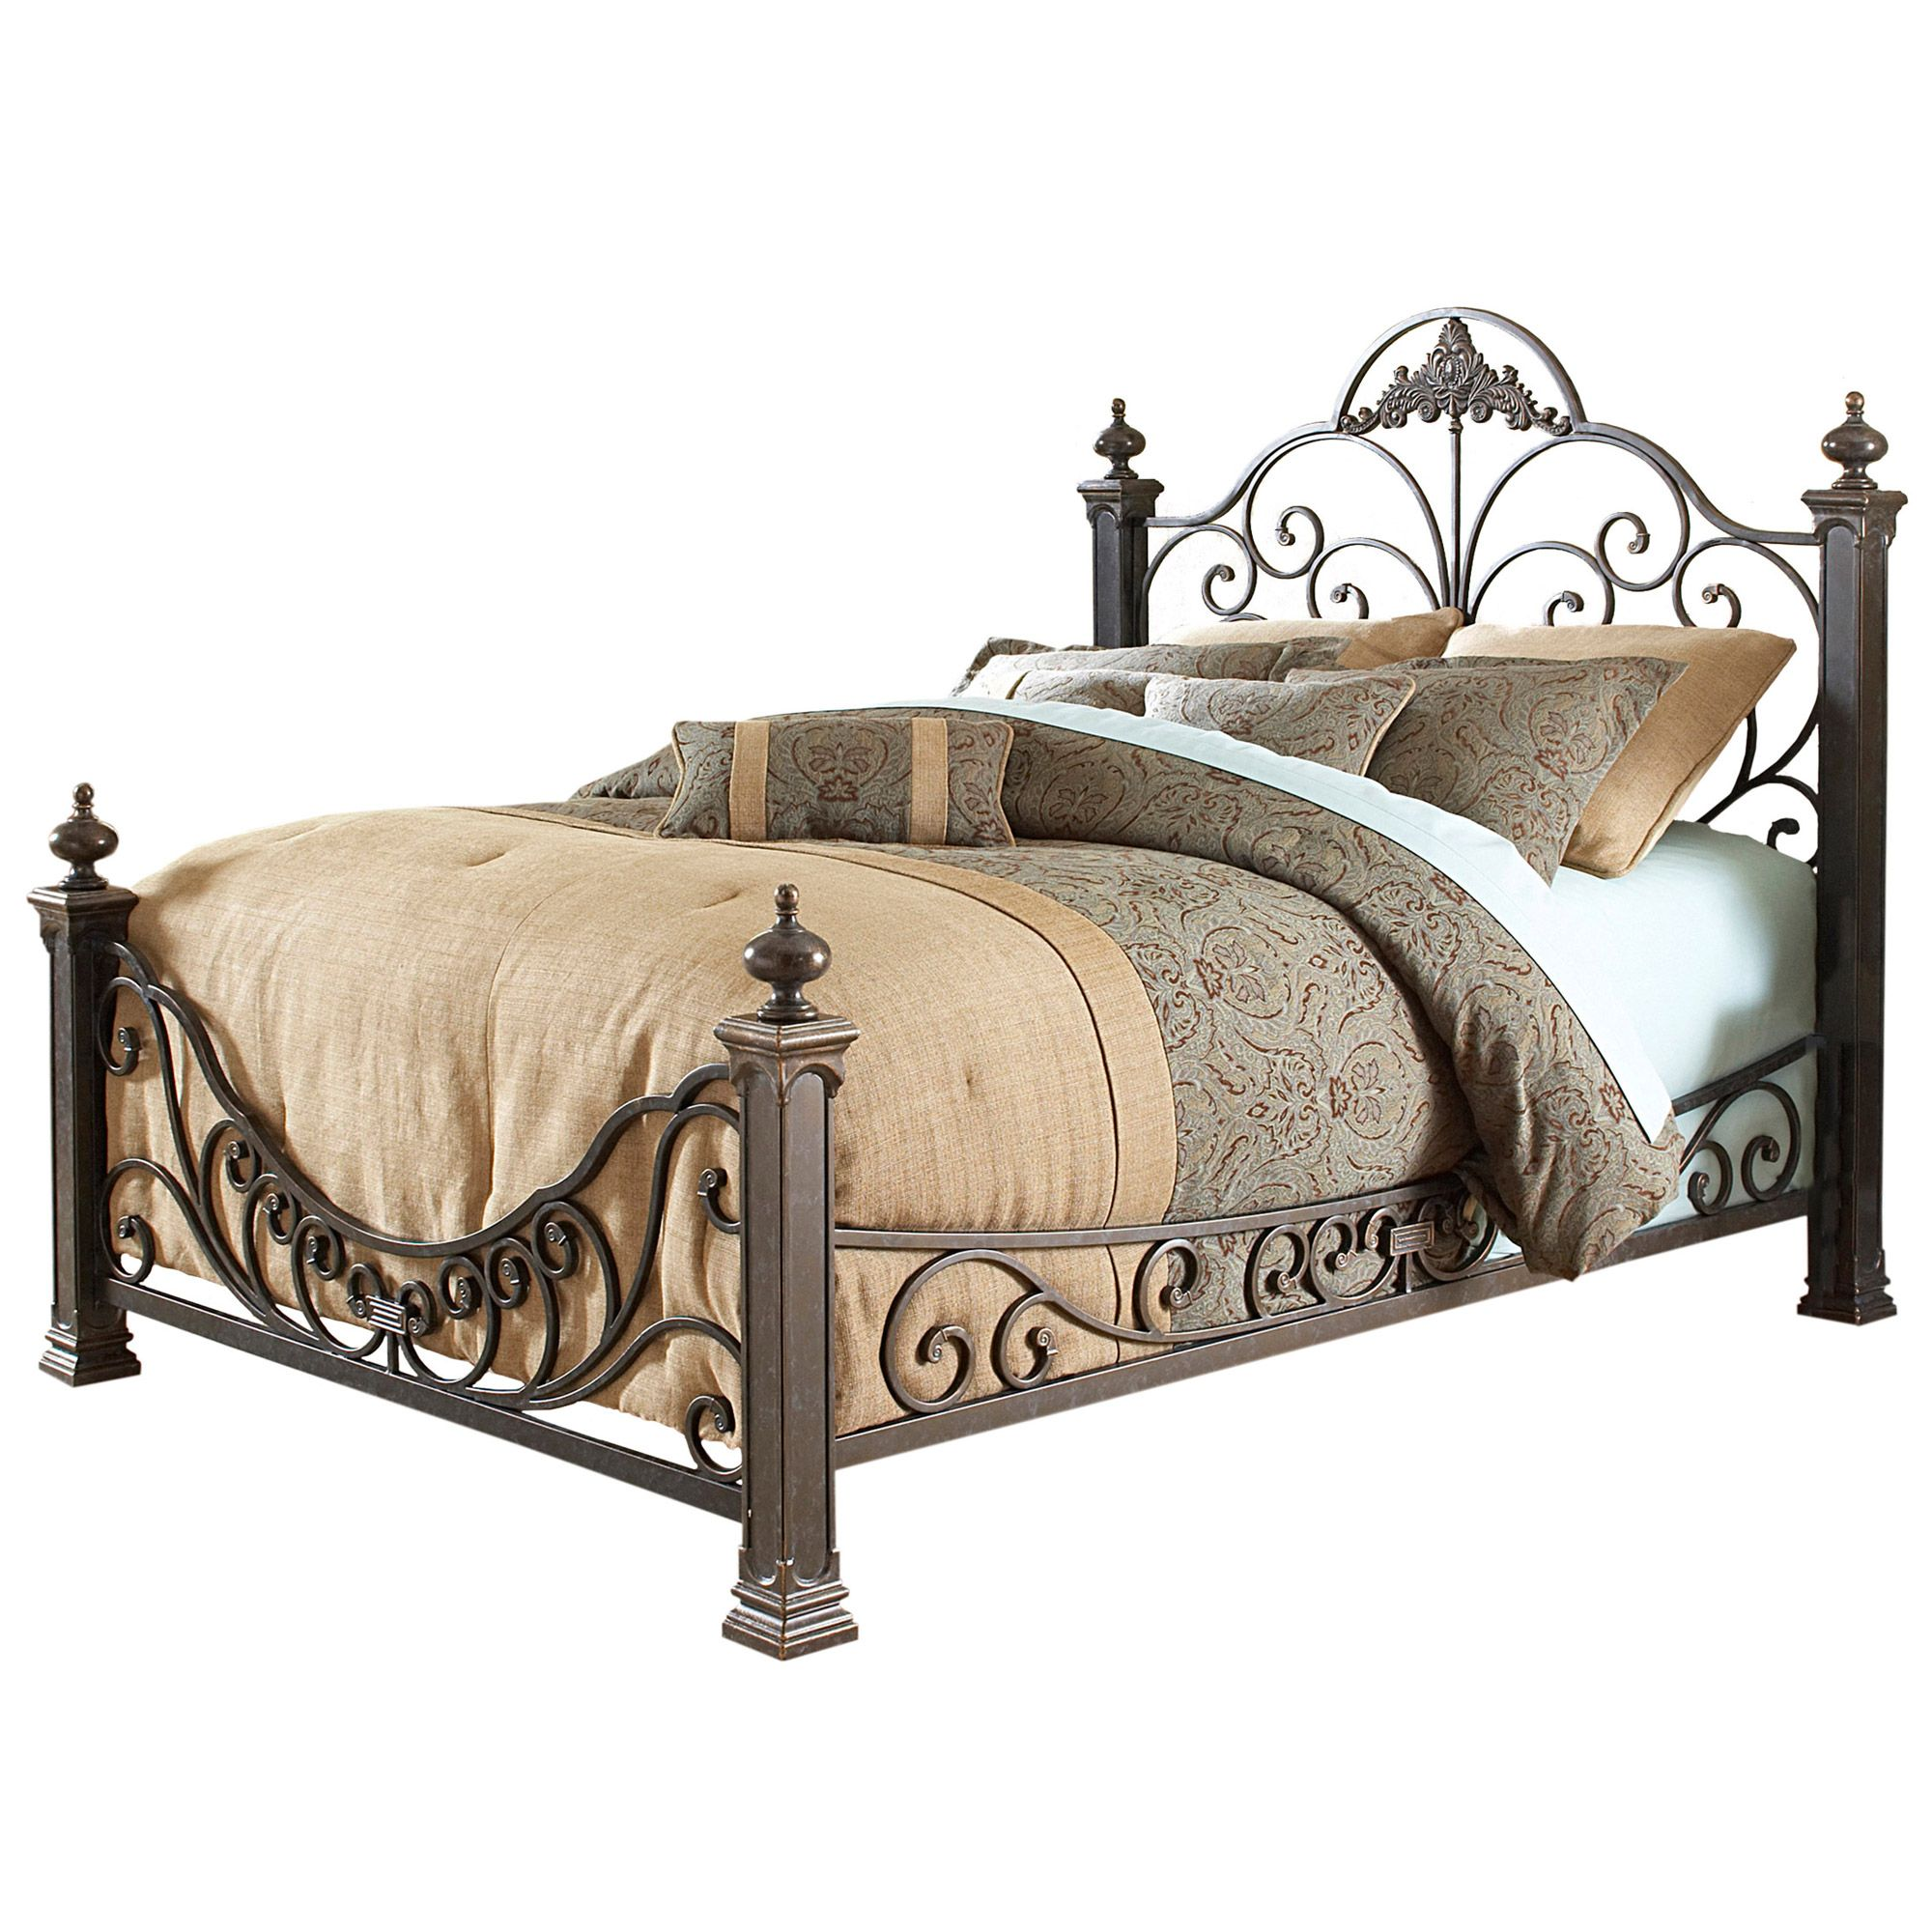 Iron Bed Lowest prices Quality American made iron beds by